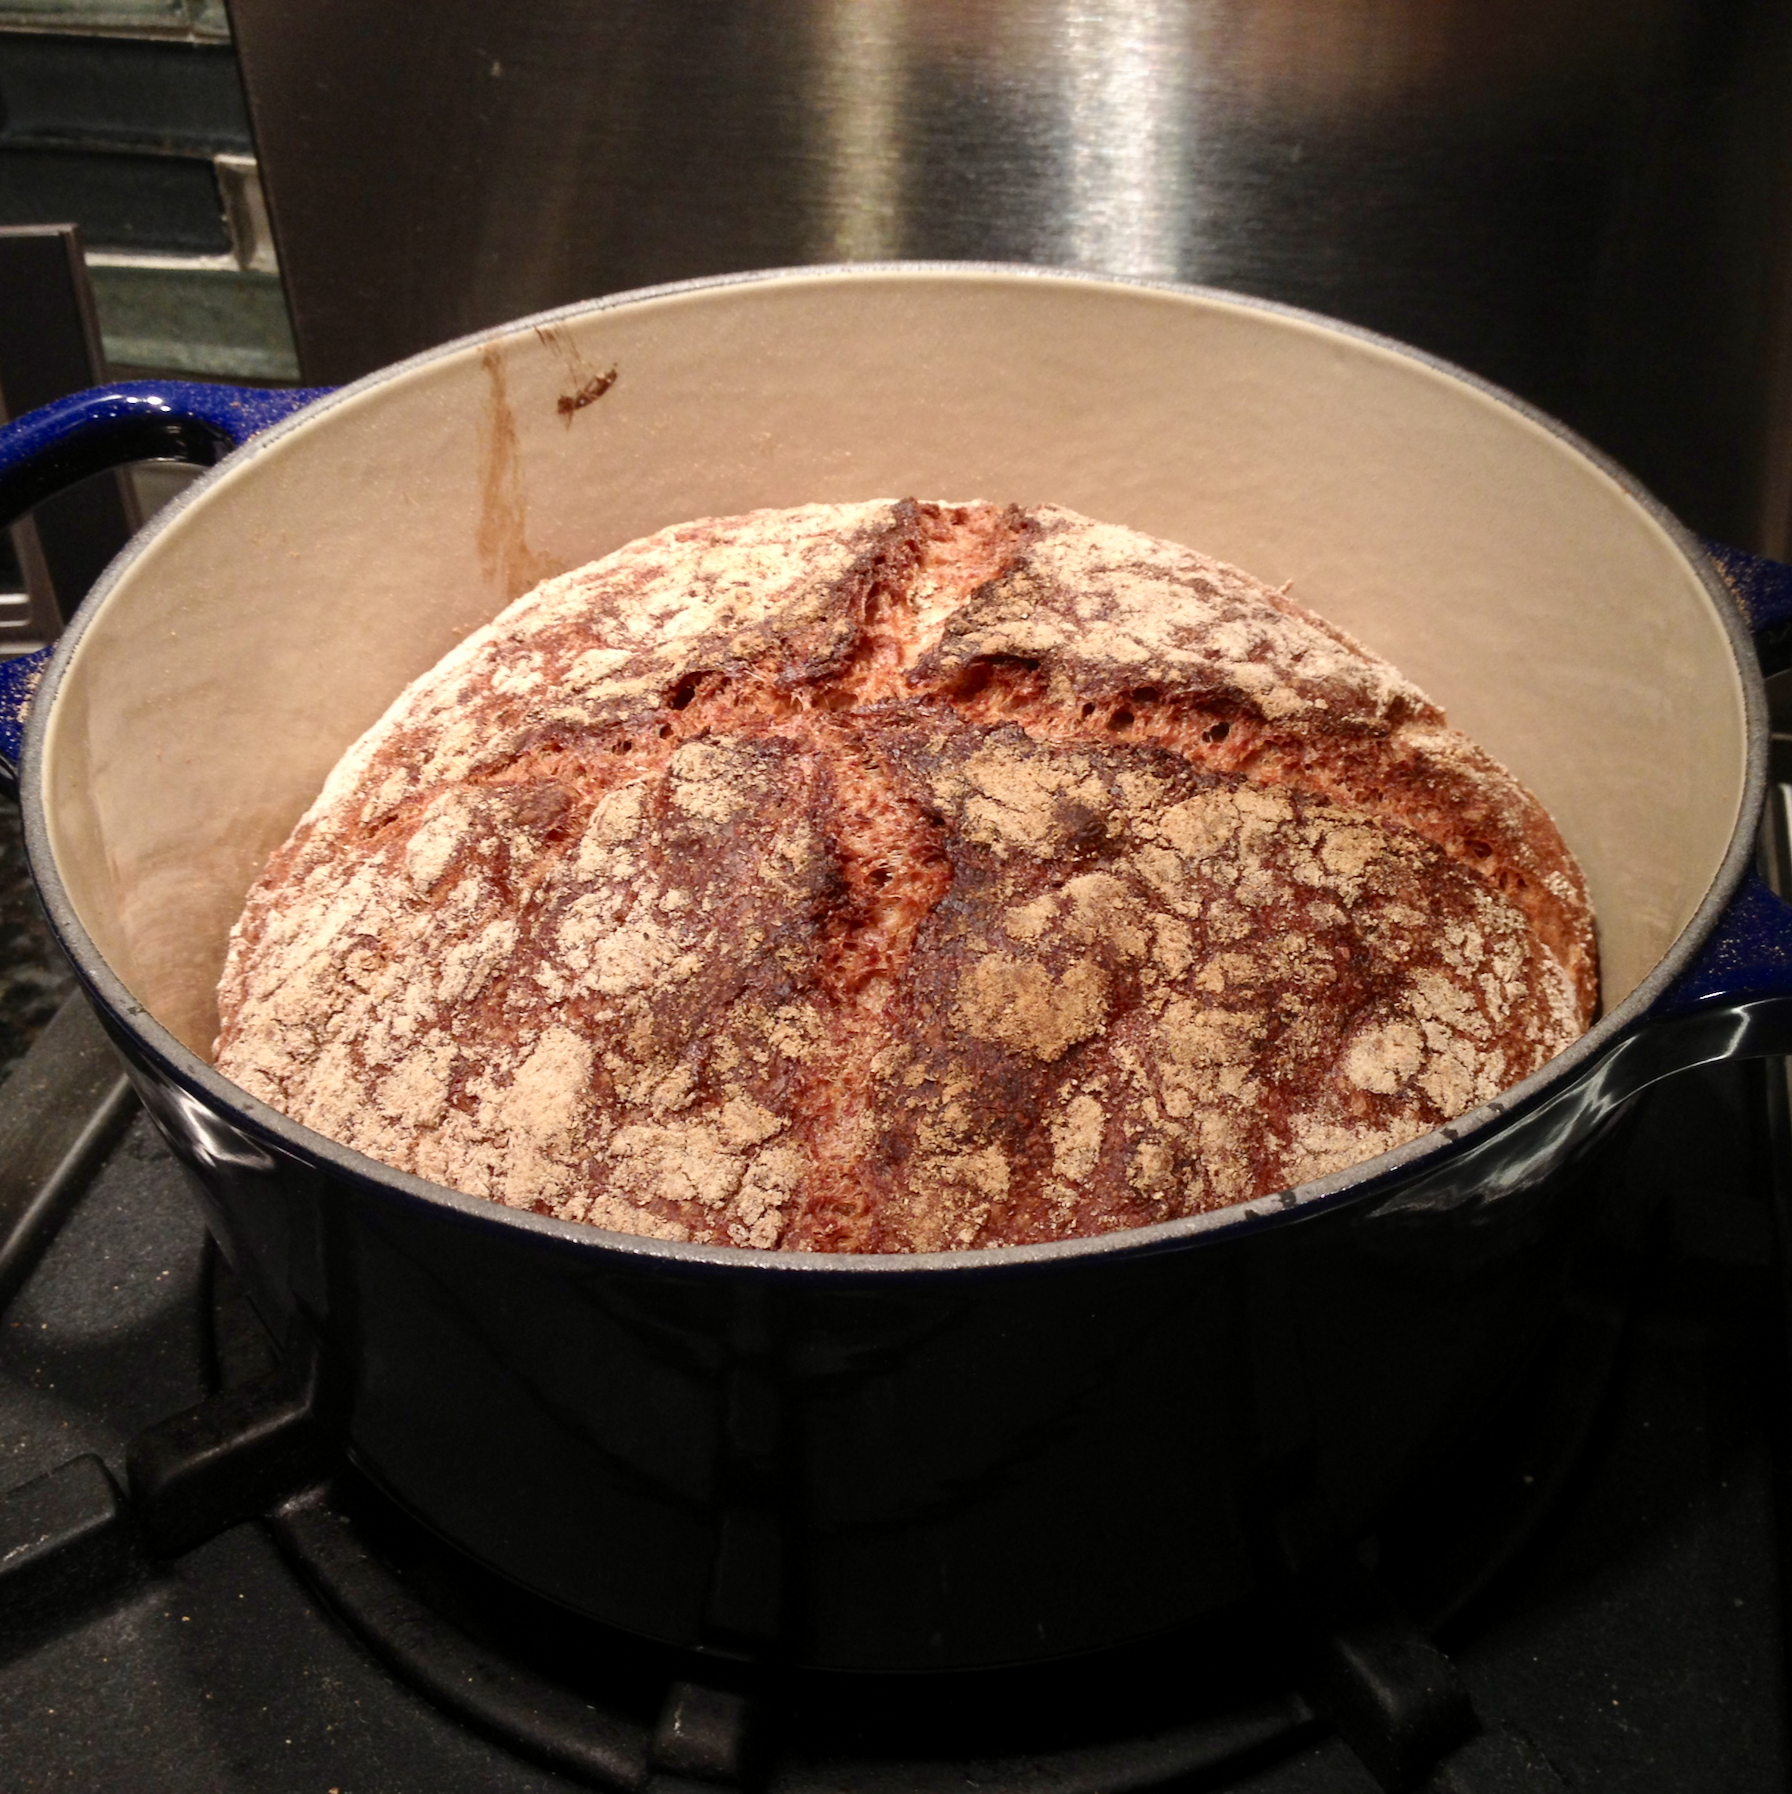 A rustic loaf of bread baked in my Dutch oven.